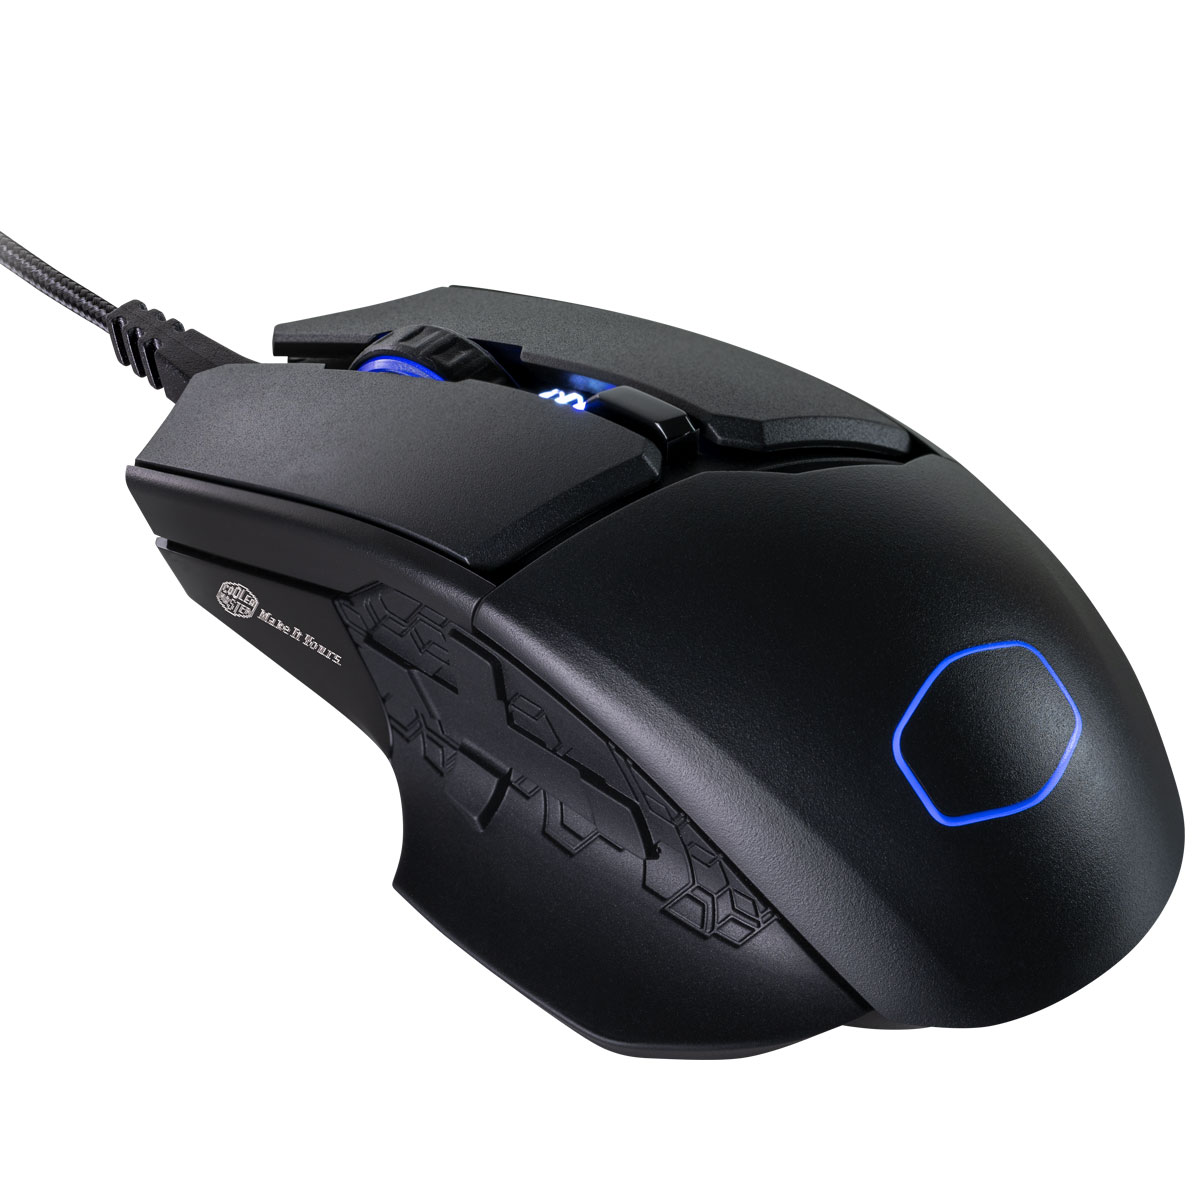 Cooler Master MasterMouse MM830 - Souris PC Cooler Master - 4